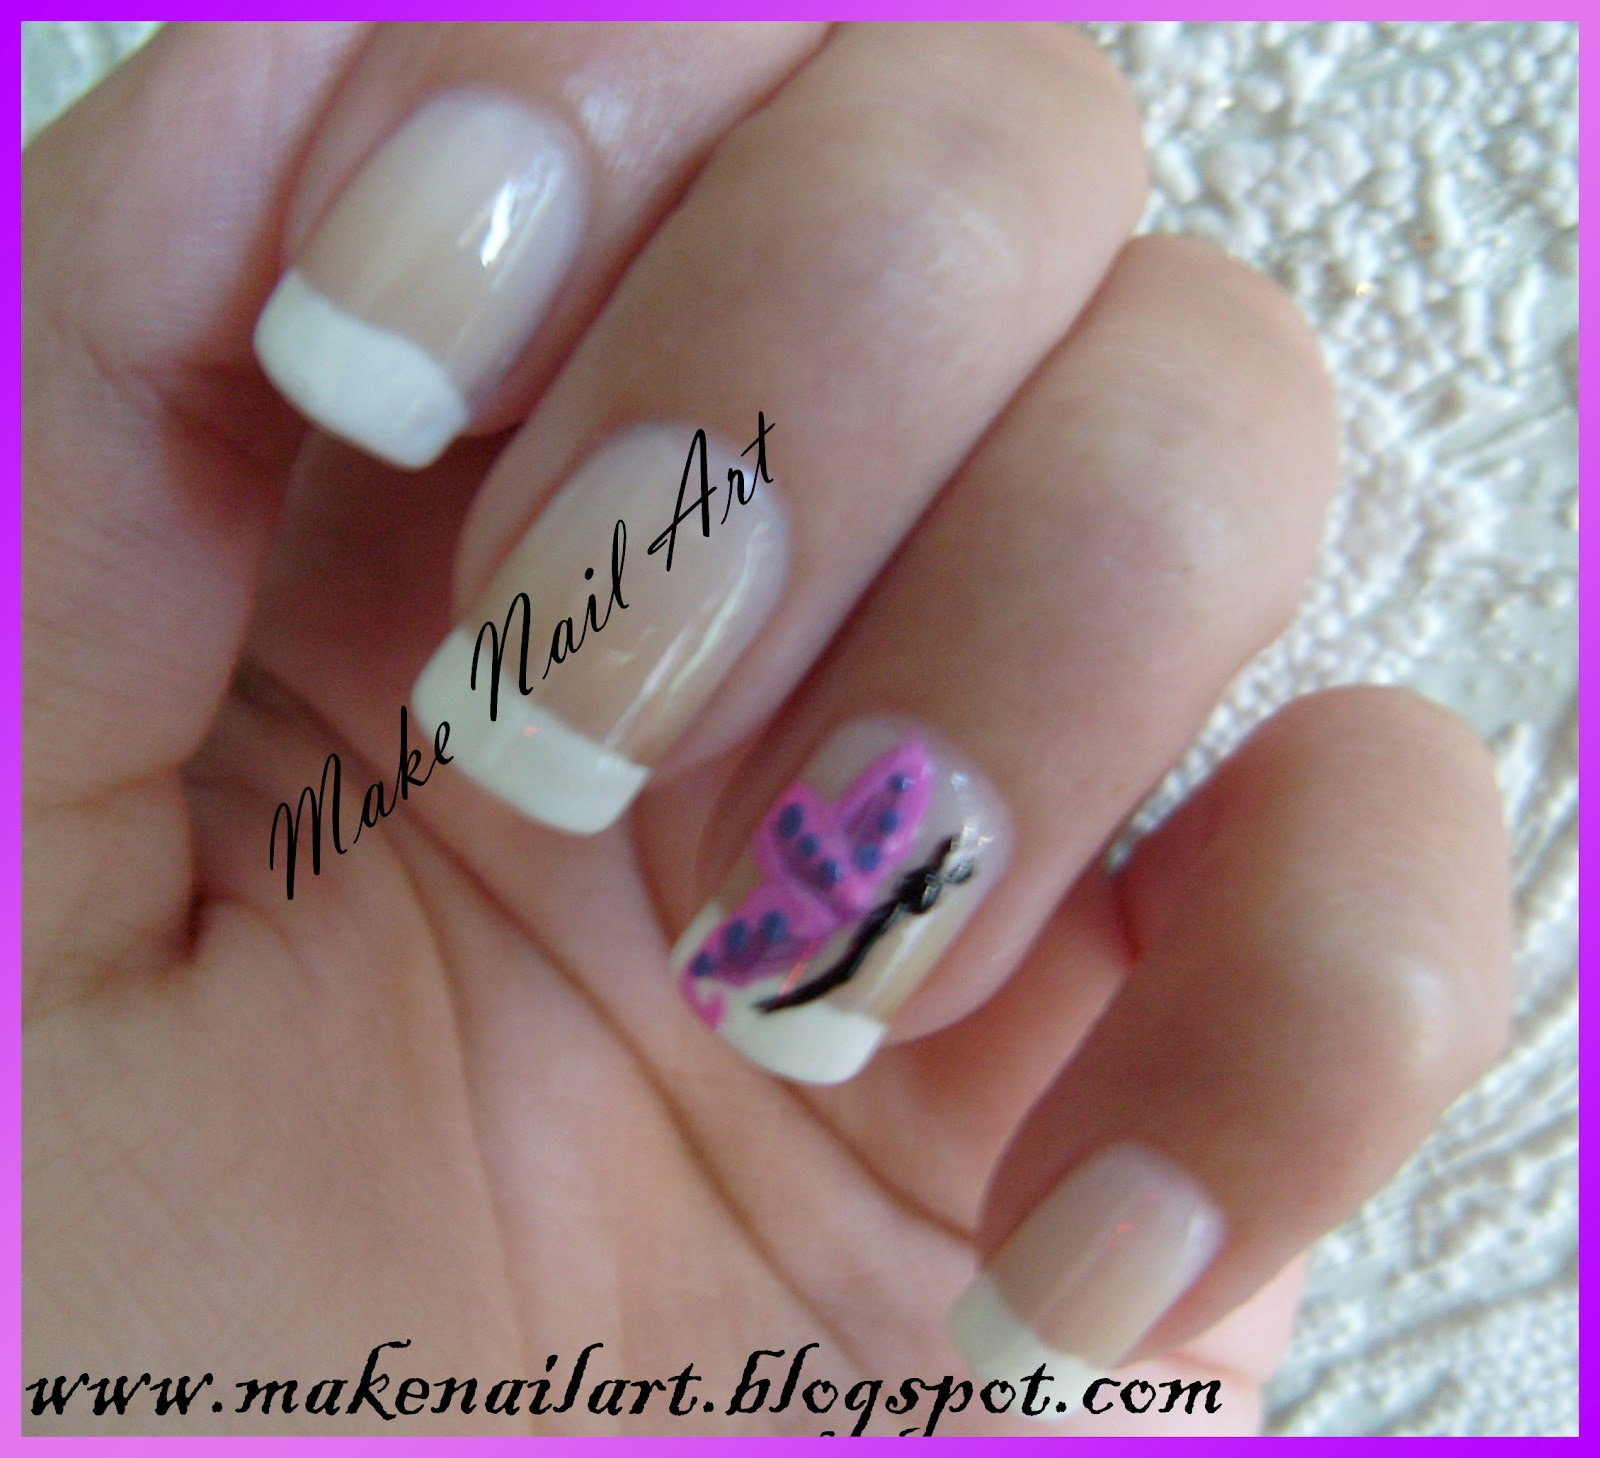 Make Nail Art: Butterfly & French Manicure Nail Art Tutorial